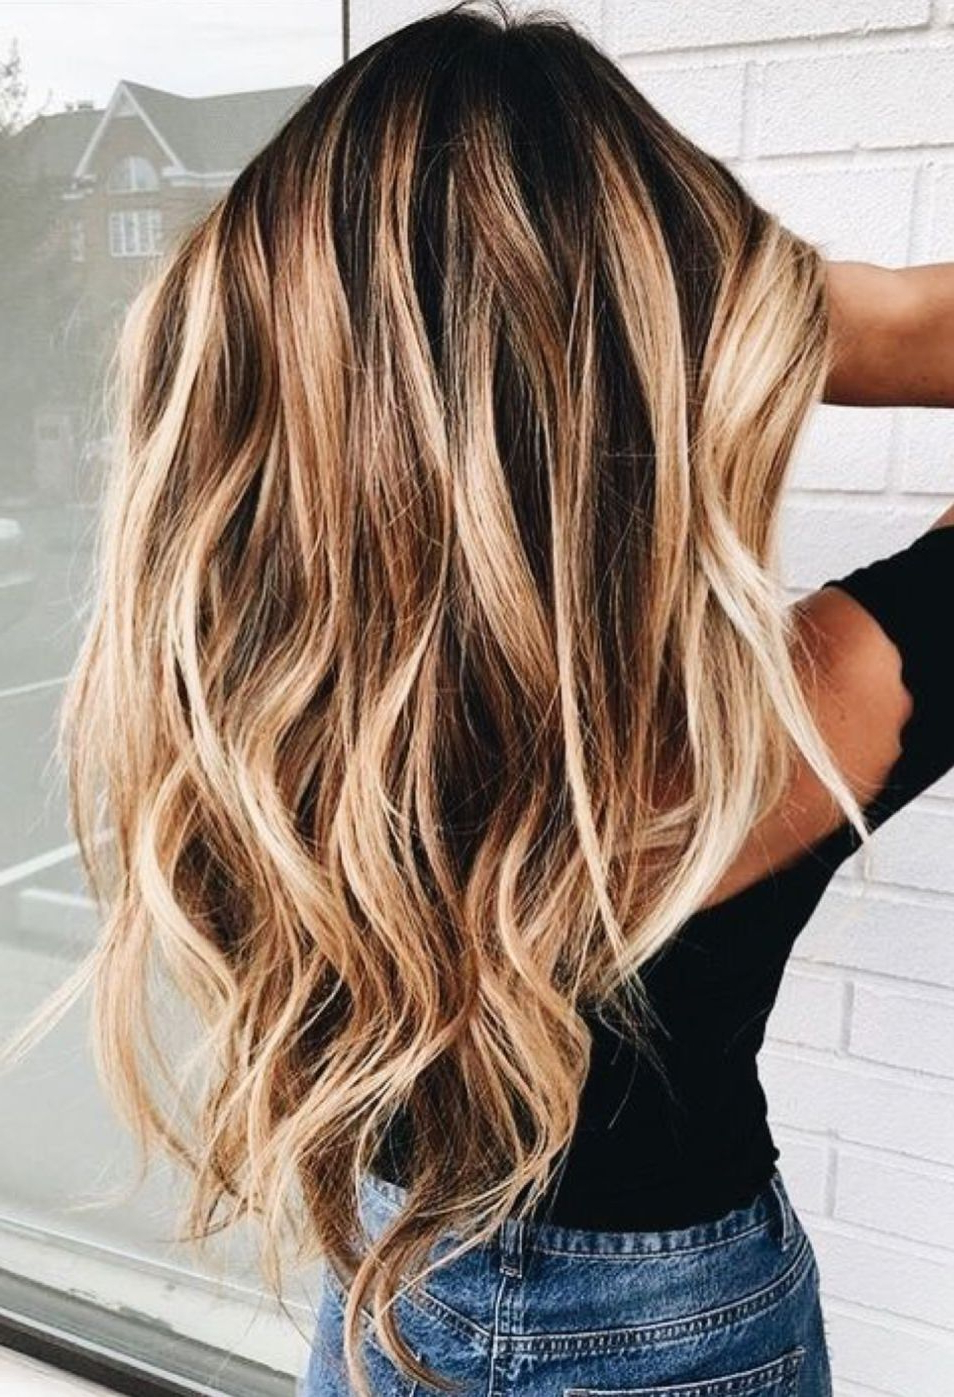 Pinangelic Fokkens On Hair | Pinterest | Hair Style, Hair Throughout Angelic Blonde Balayage Bob Hairstyles With Curls (View 17 of 20)